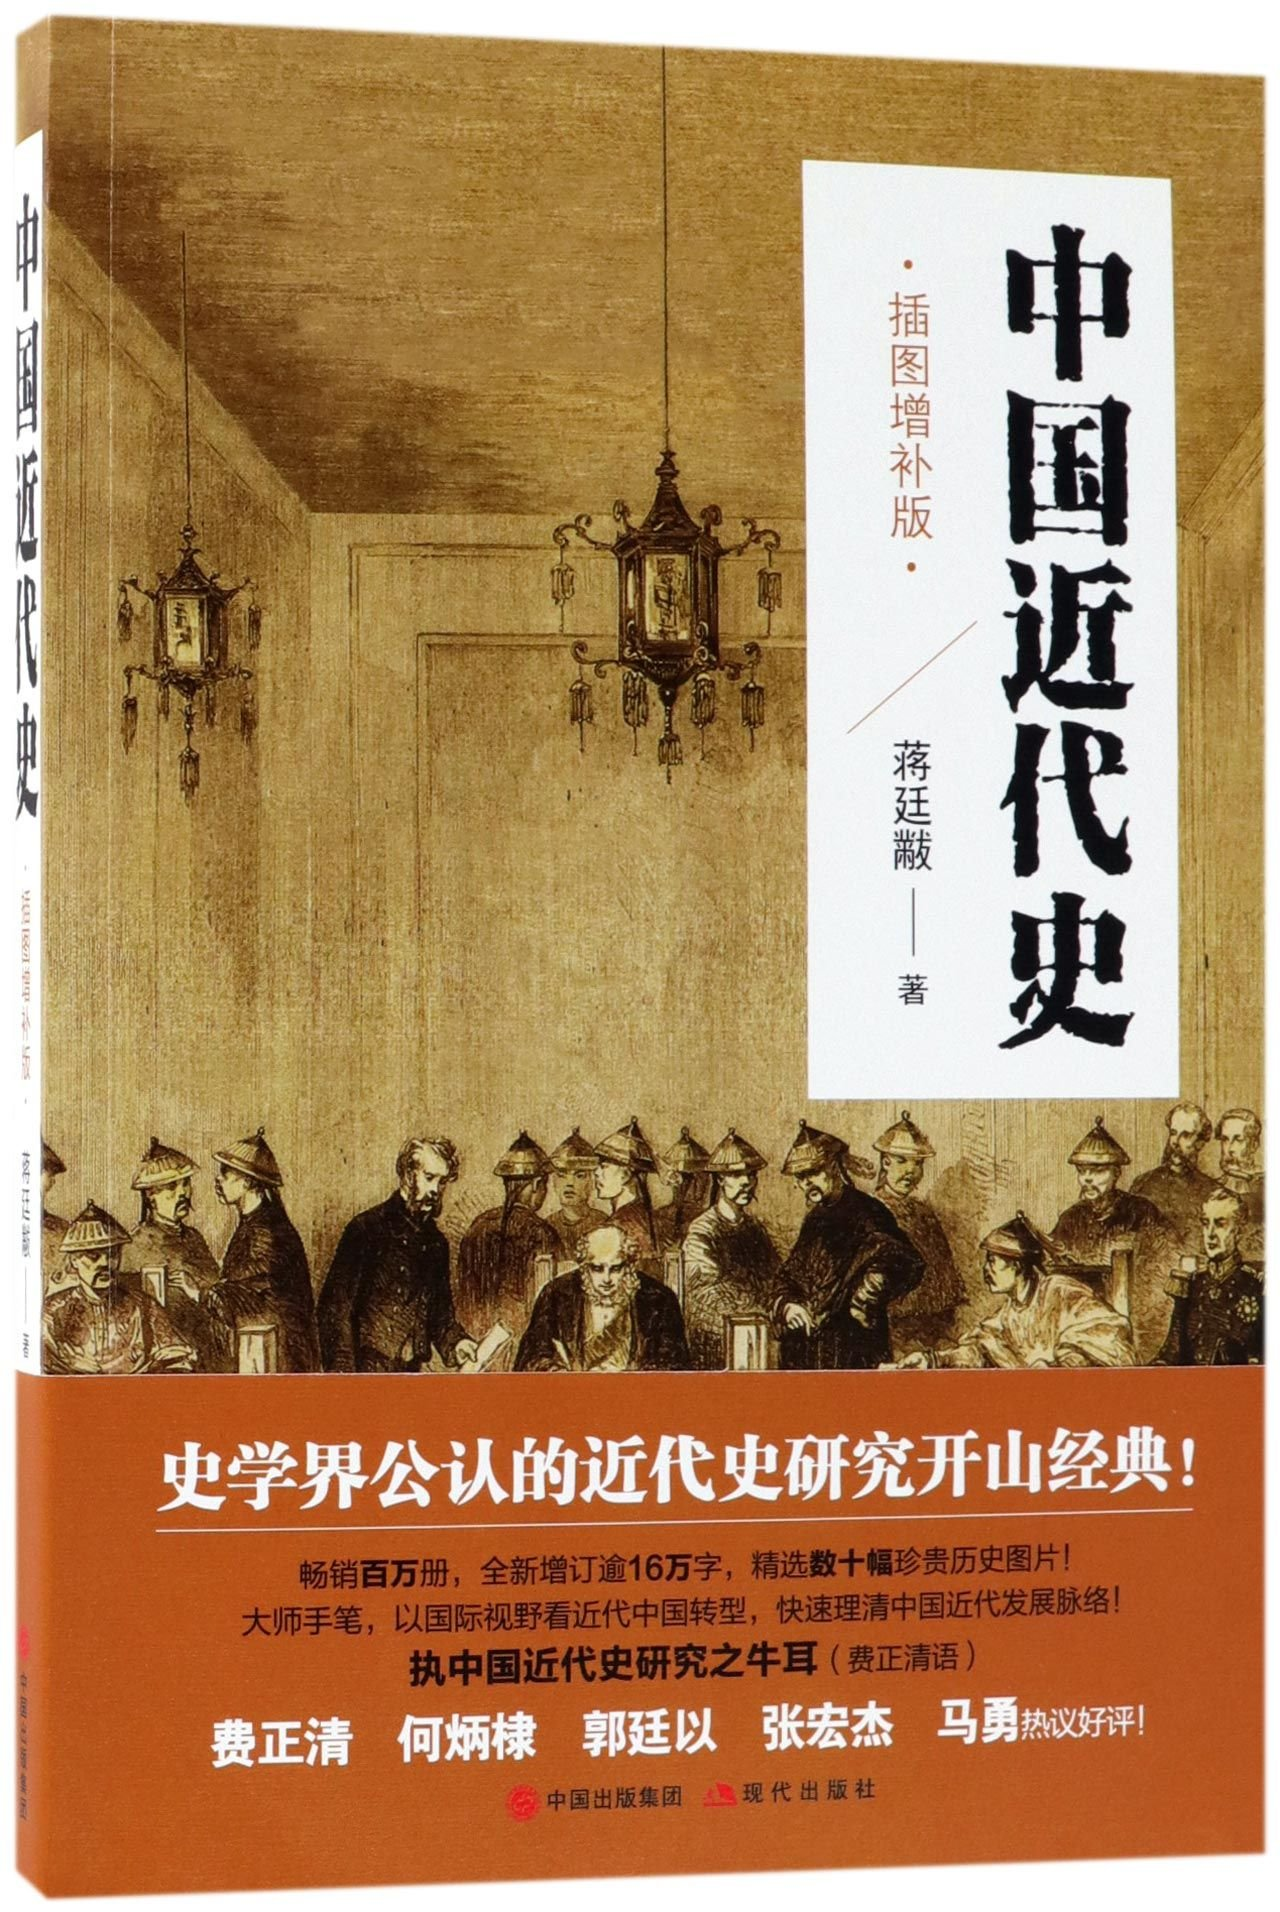 A Modern History Of China (with Pictures) (Revised Edition) (Chinese Edition)